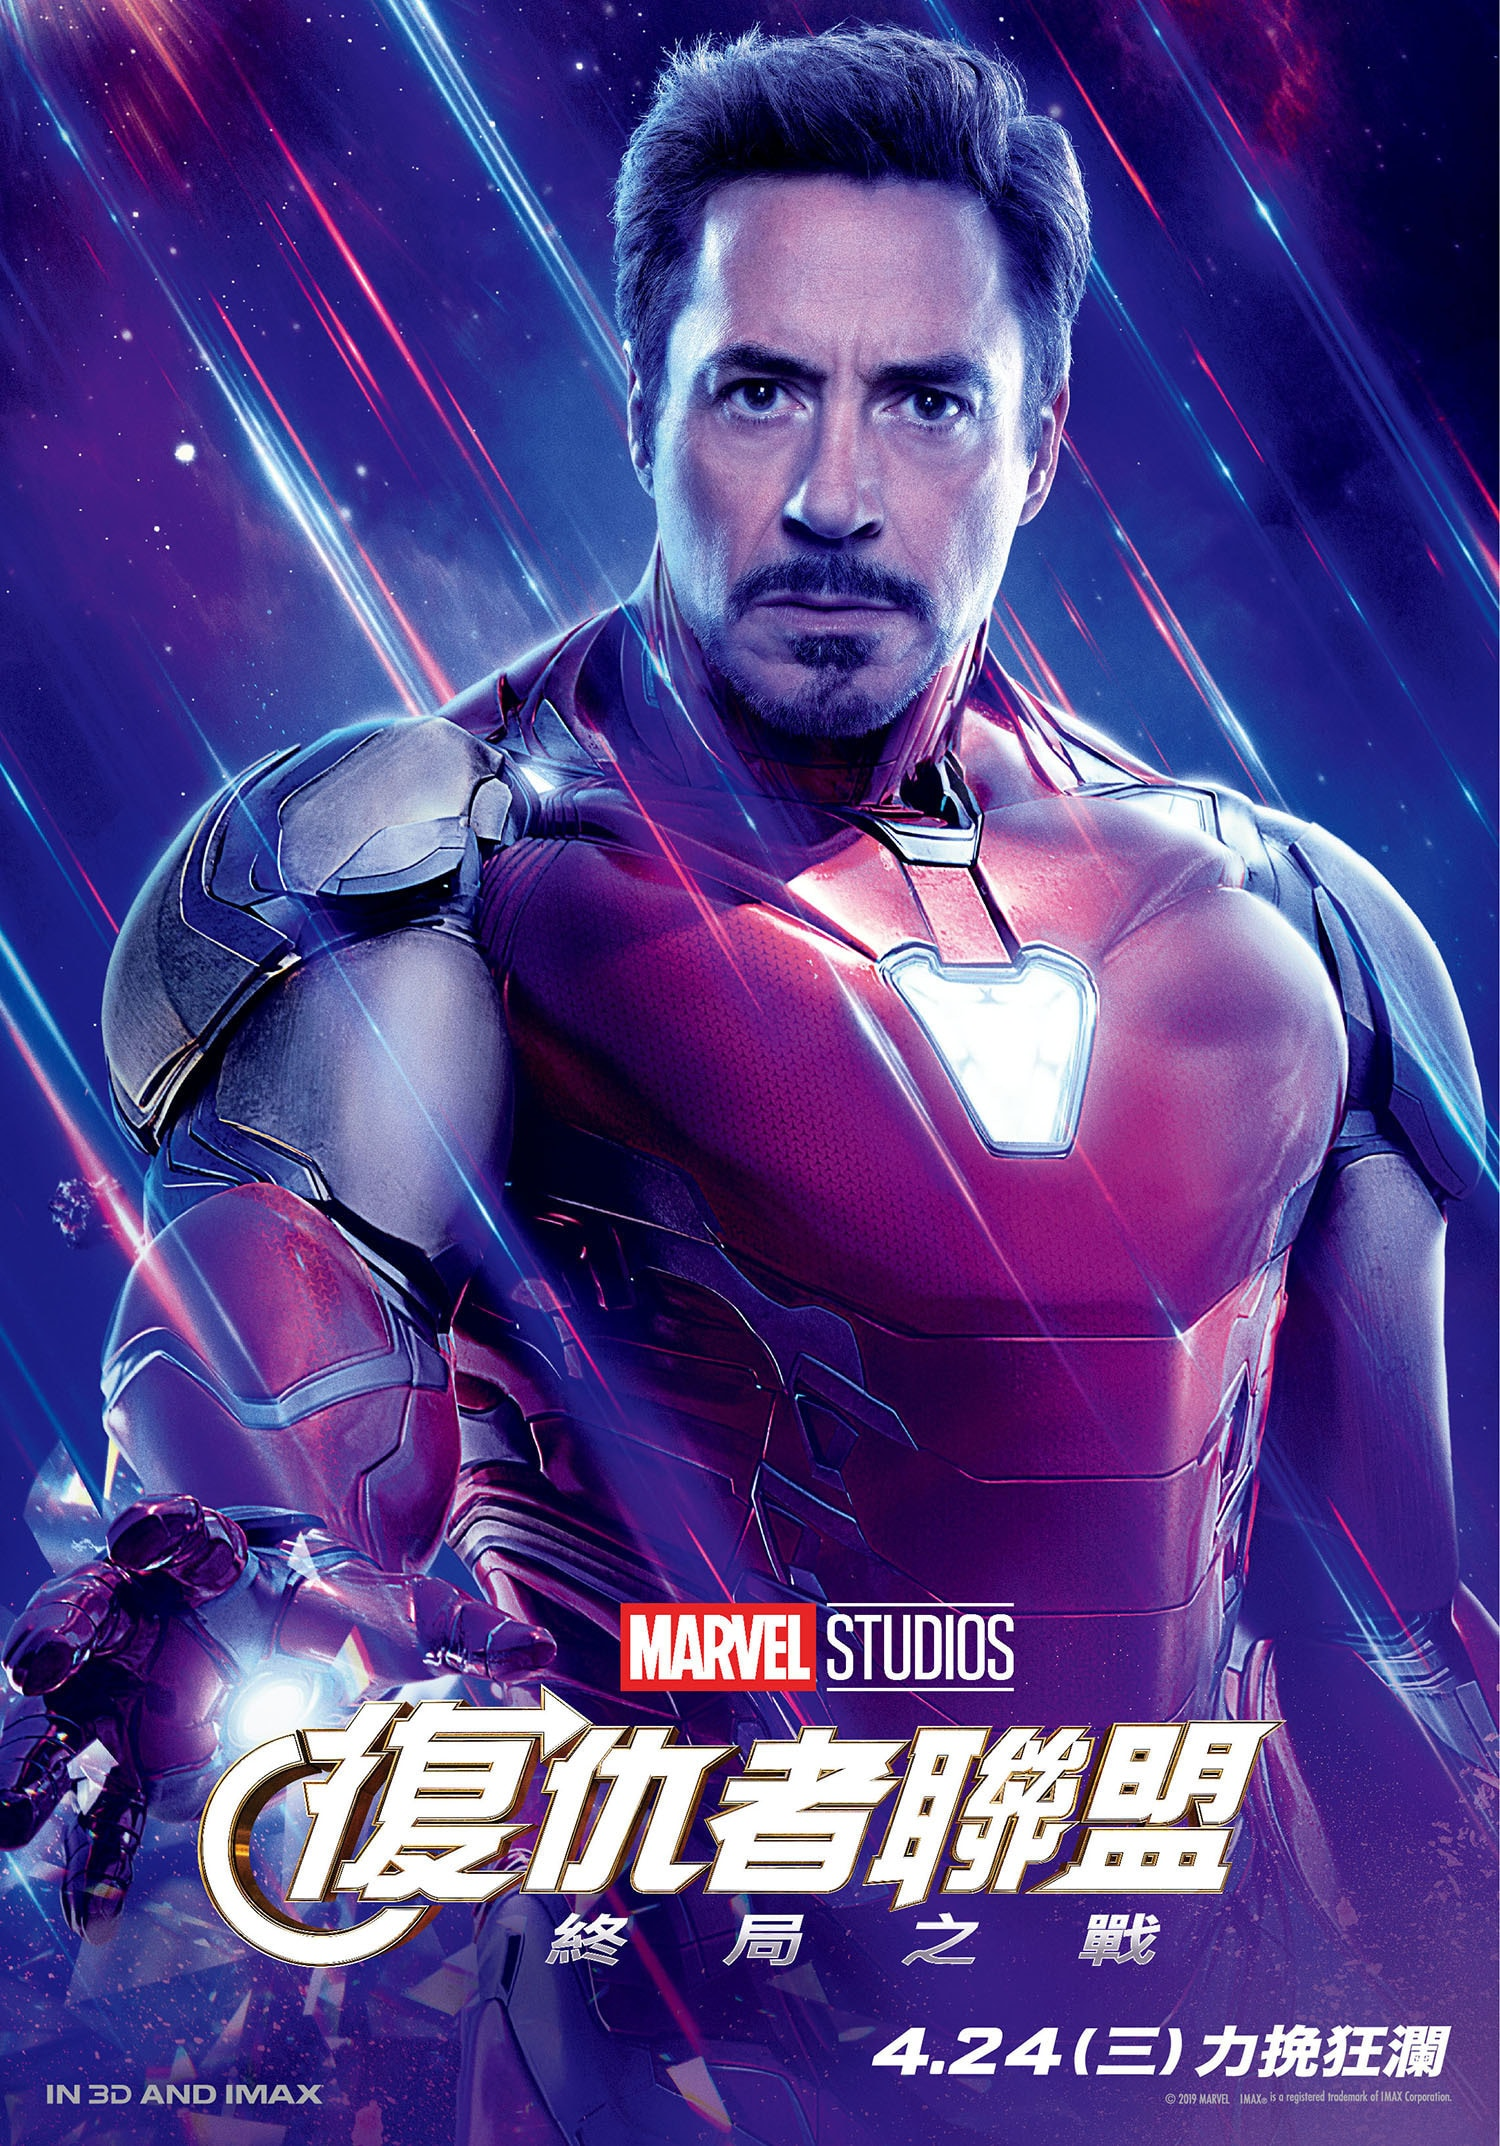 Avengers:End Game - Iron Man